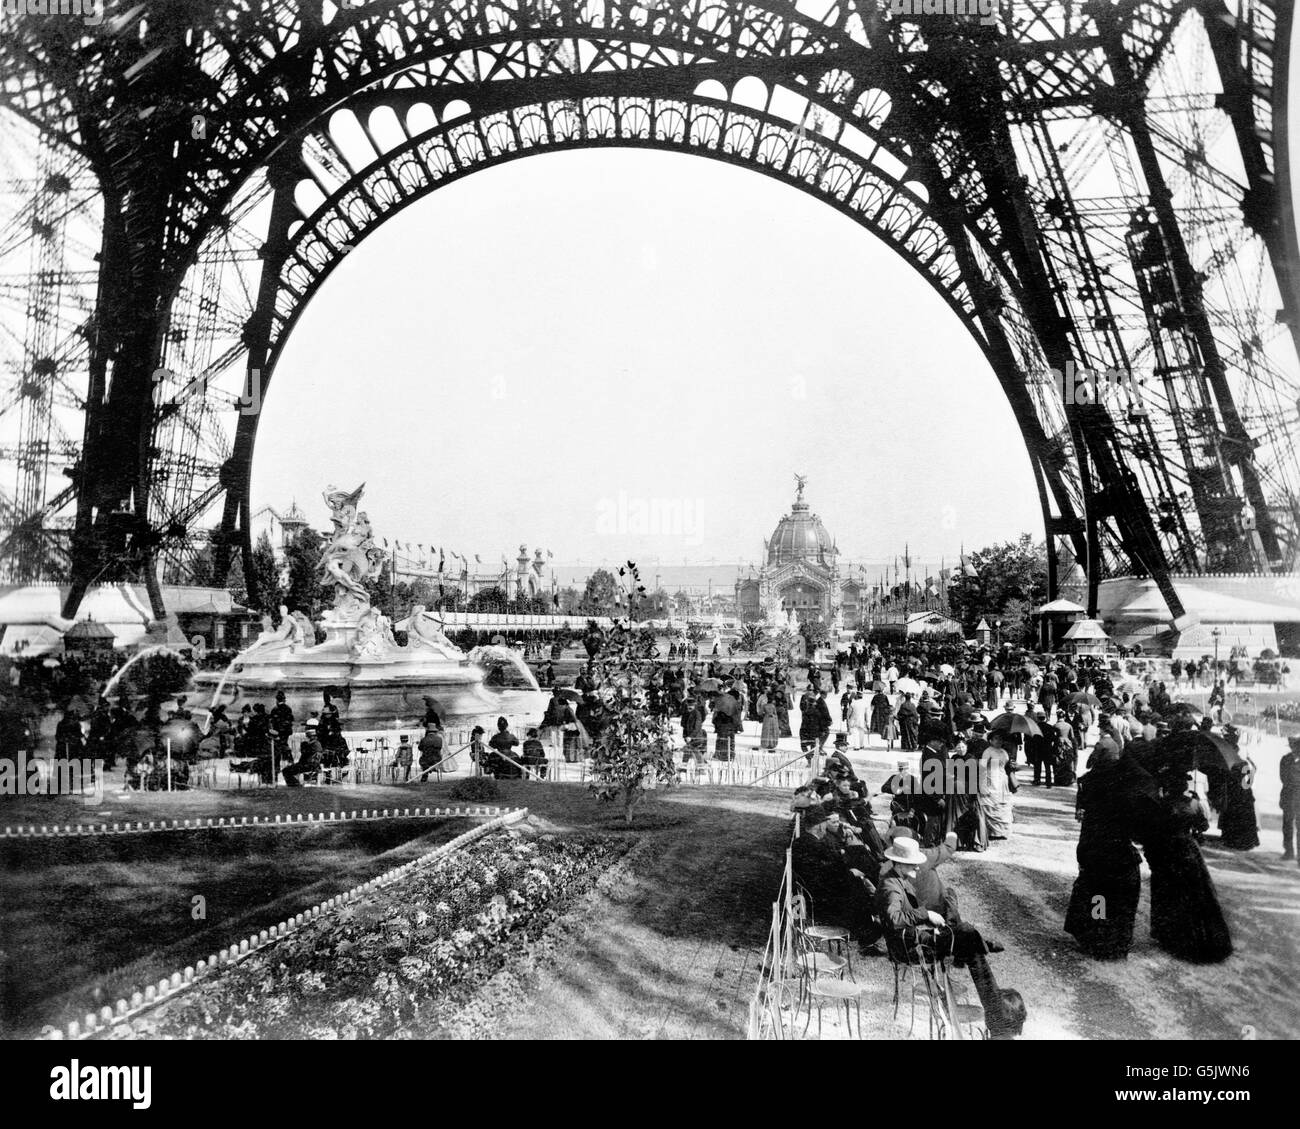 Paris Exposition 1889. Eiffel Tower. Crowds on the Champ de Mars during the Exposition Universelle of 1889, Paris, - Stock Image